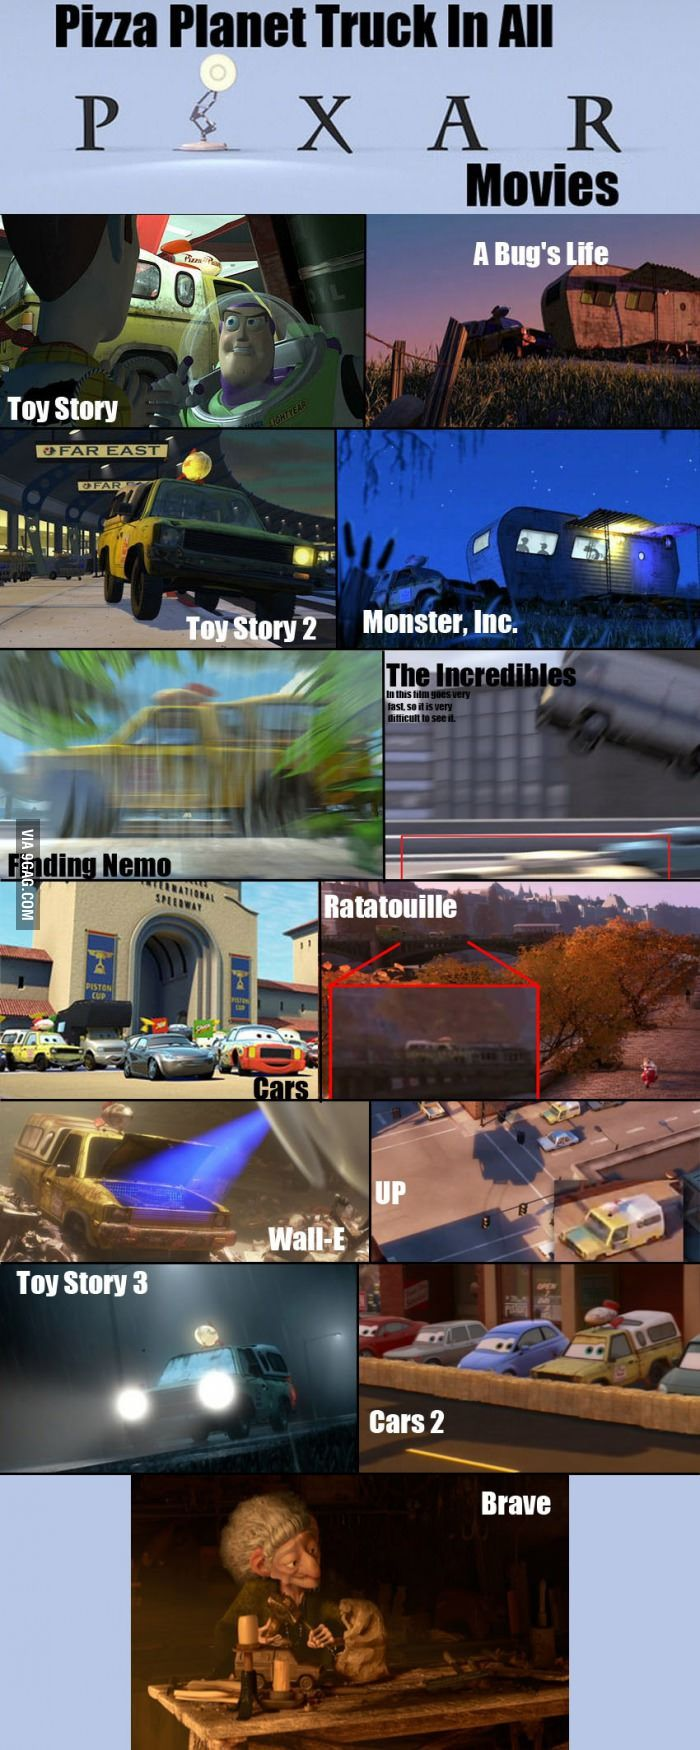 Pizza Planet Truck In All Pixar Movies All Pixar Movies